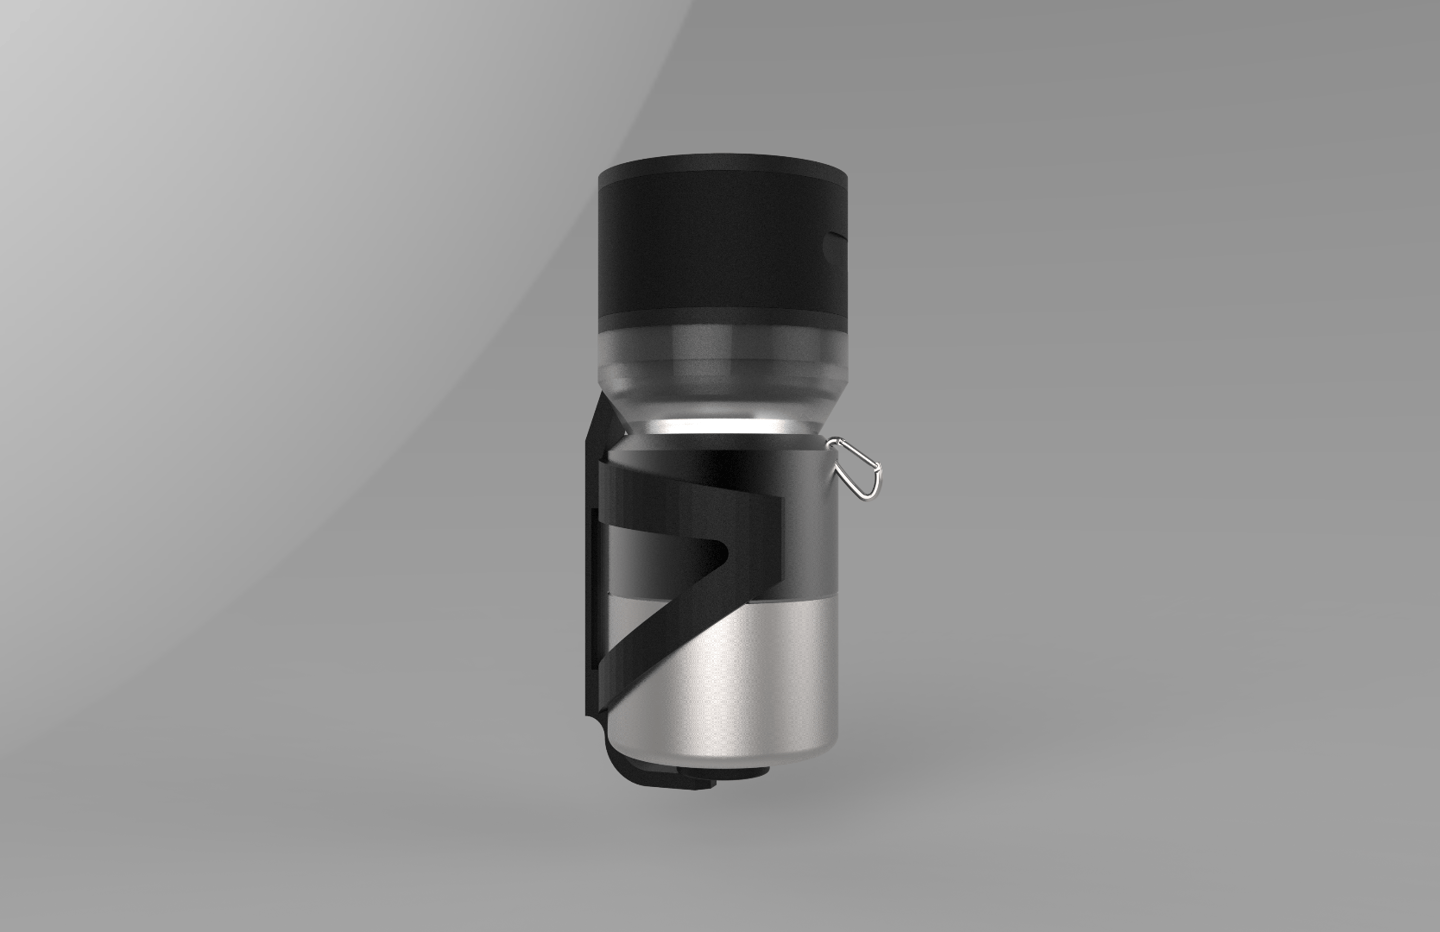 Another Fuseconcept now in the initial development stages, this thermoflask is designed to fit in a bicycle water bottle cage